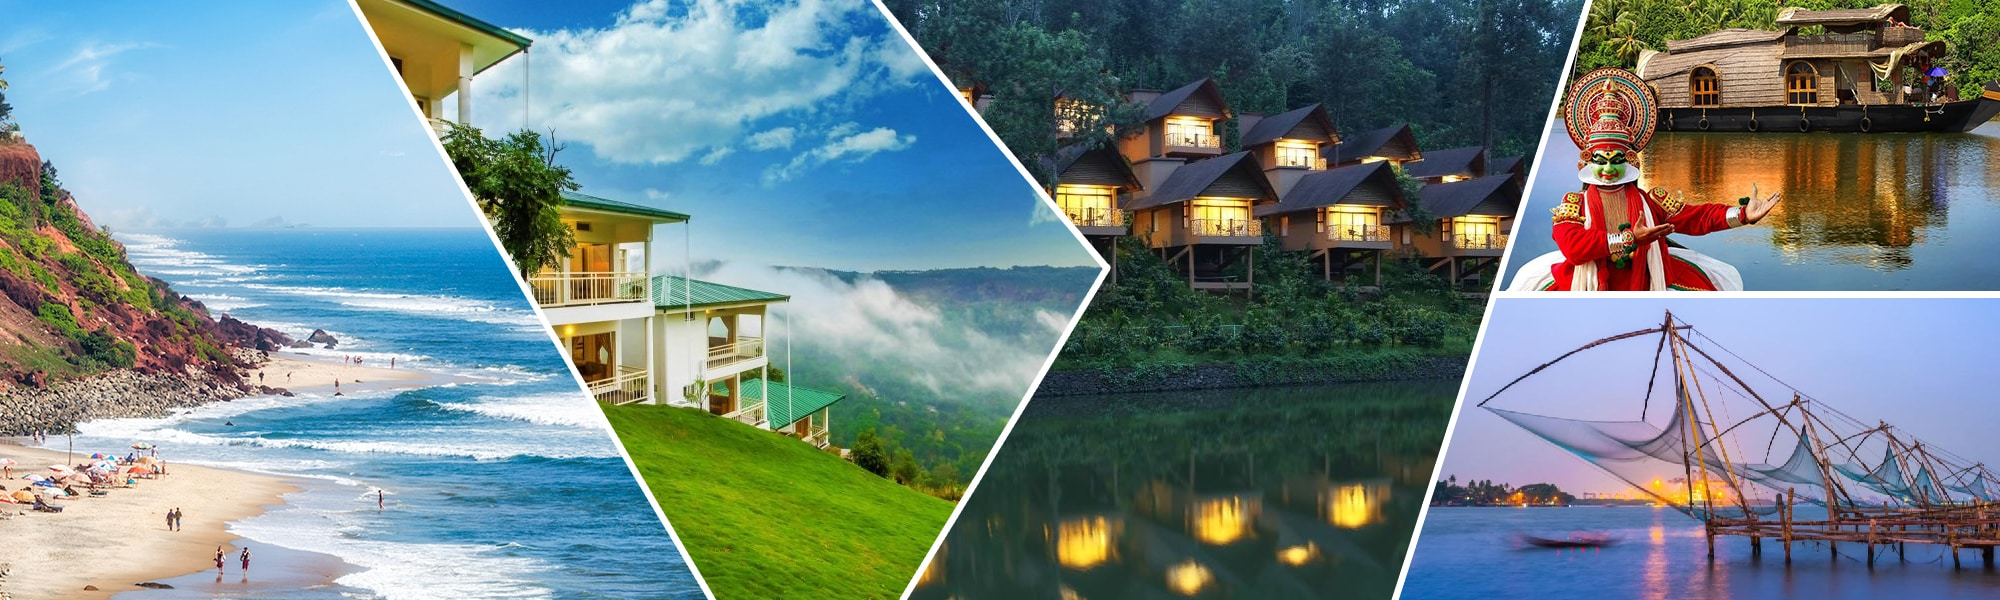 Munnar, Thekkady, Alappuzha and Kochi – Kerala Special Package Tour